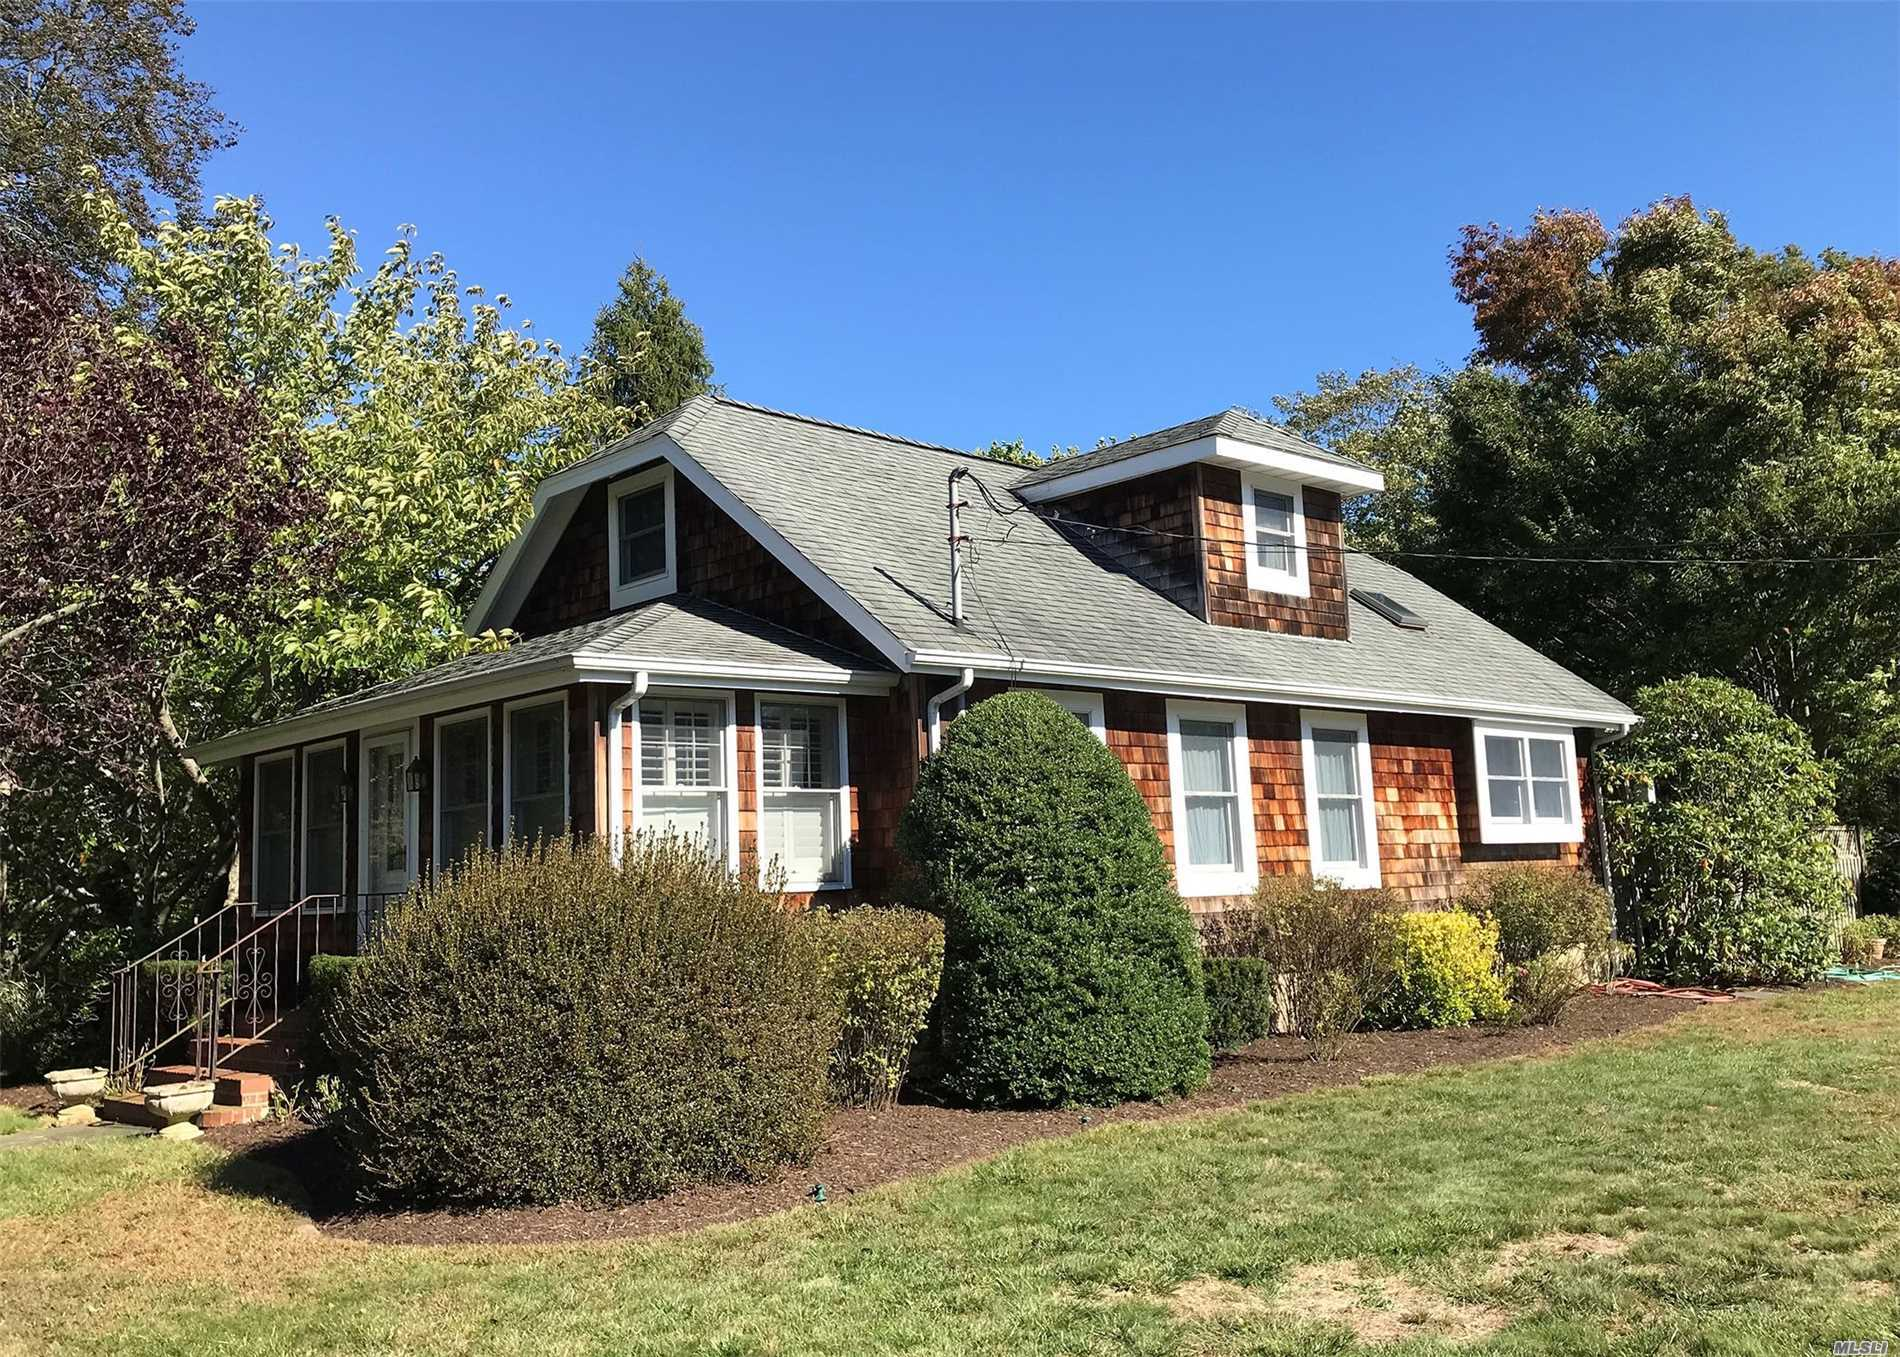 Charming Craftsman Style Cape With 3 Bedrooms And 3 Bathrooms Set On Beautifully Landscaped .62 Acre Property. This Thoughtfully Updated Home Is In A Prime Location, Close To Village Main St And Moriches Bay. The Home Also Features A 20 X 38 Detached Garage And Low Taxes.